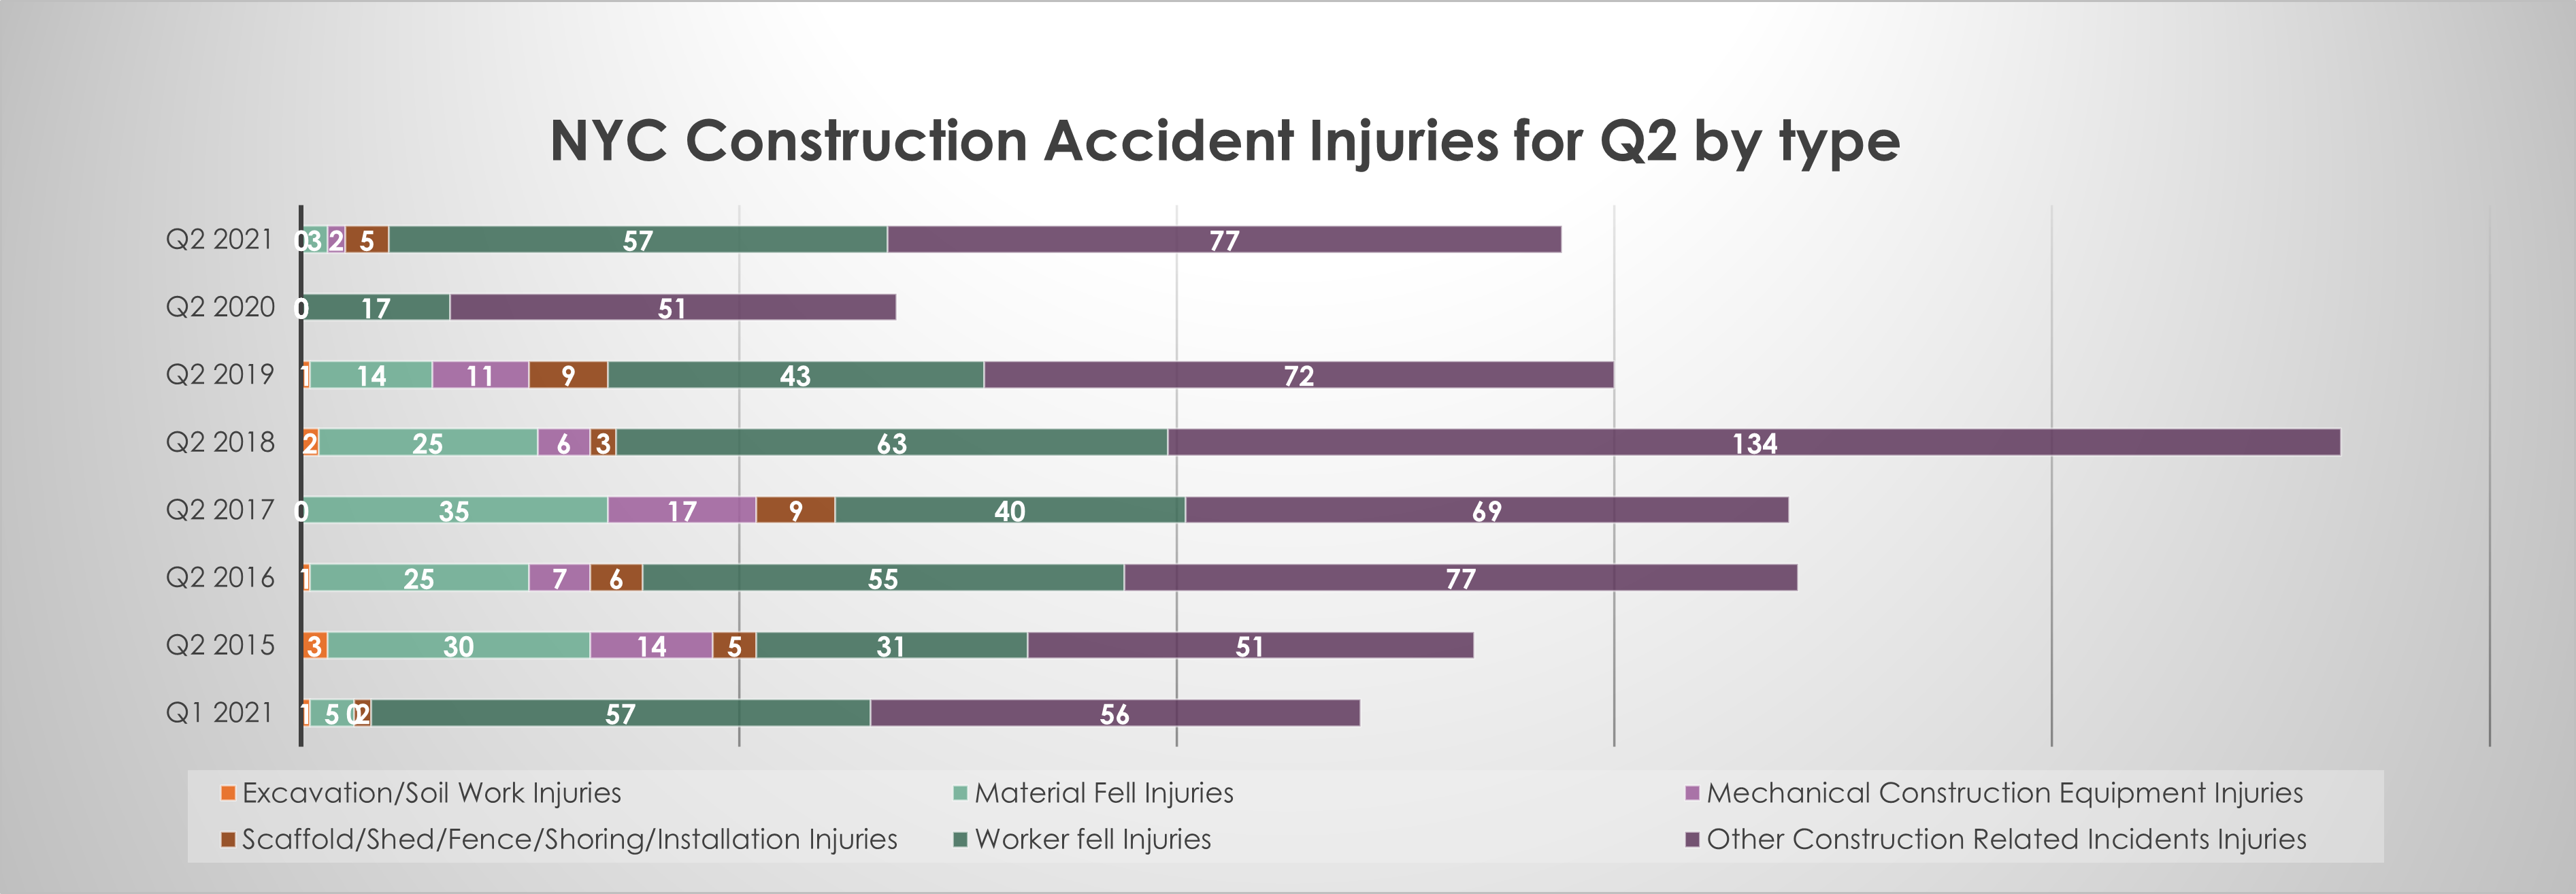 Construction accident injuries by type in New York Q2 2021